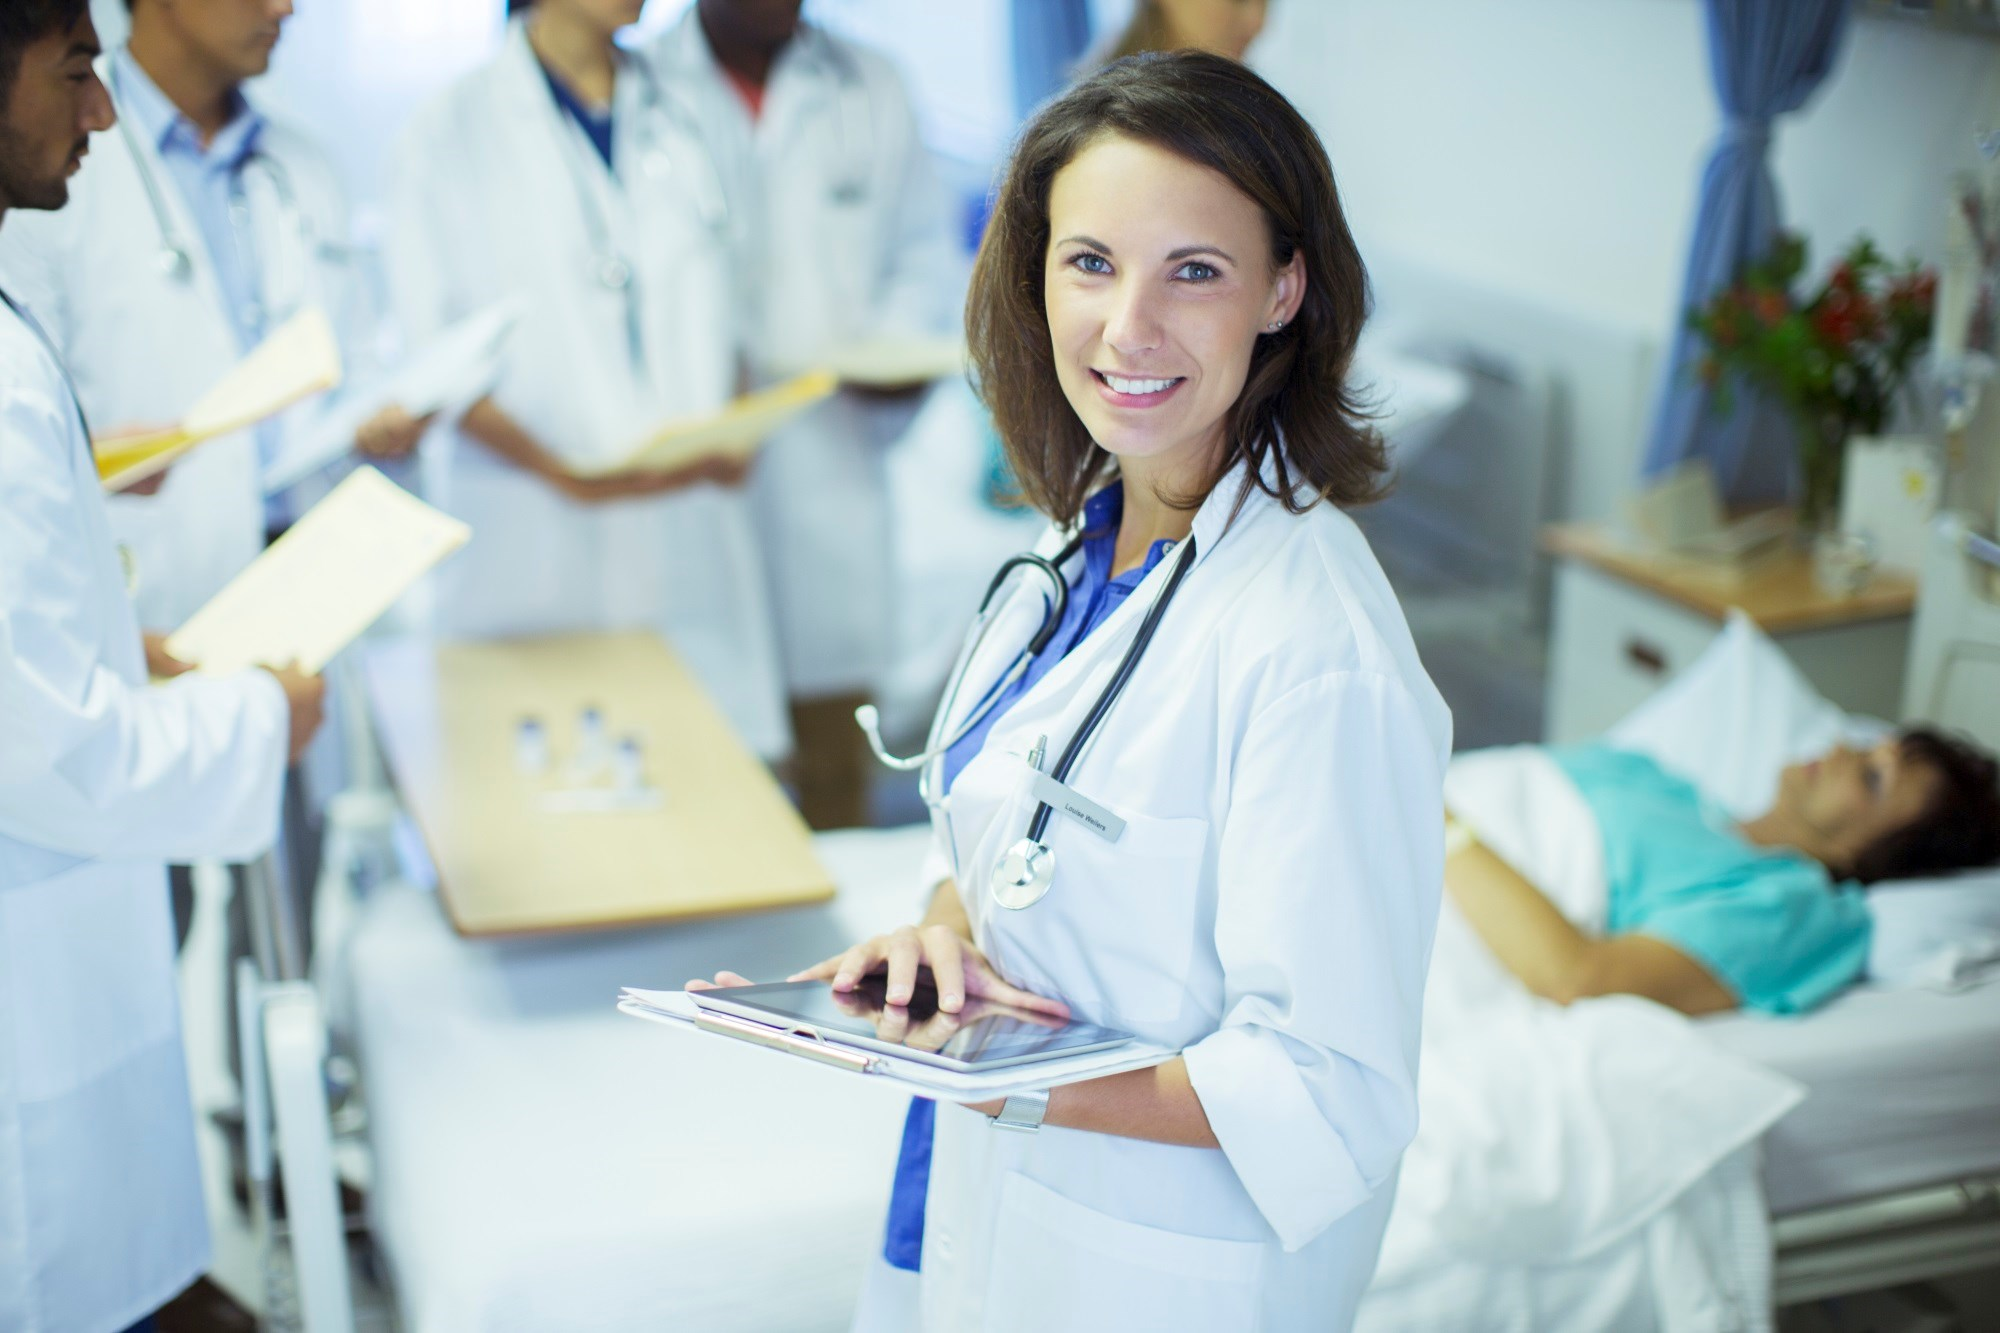 Medical residents can take steps to maintain their energy and alertness during long shifts.